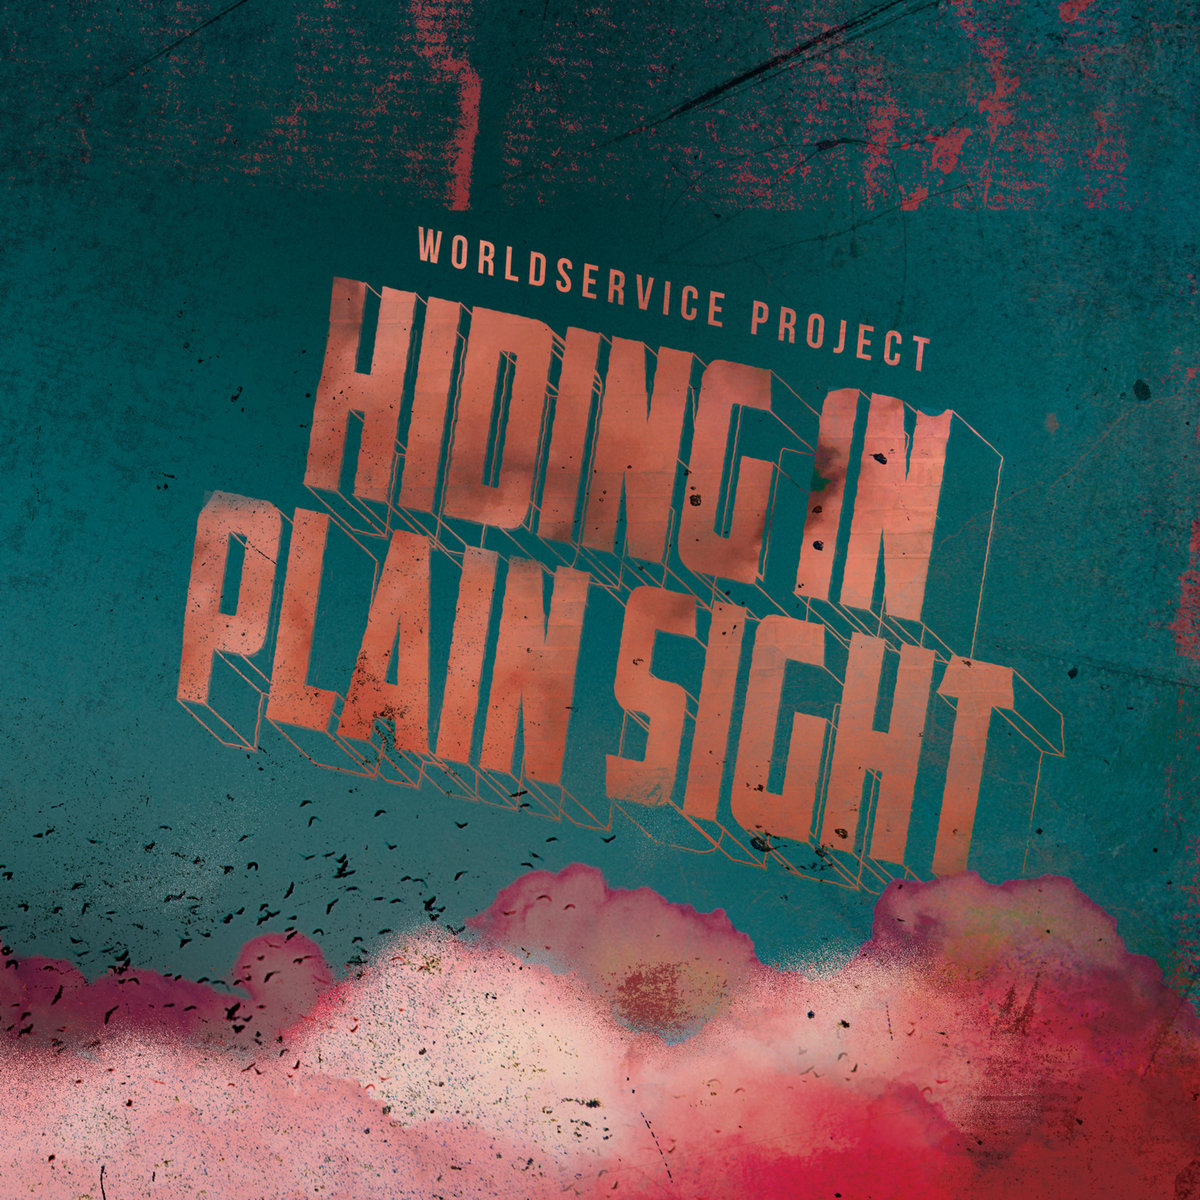 Review of WorldService Project: Hiding in Plain Sight